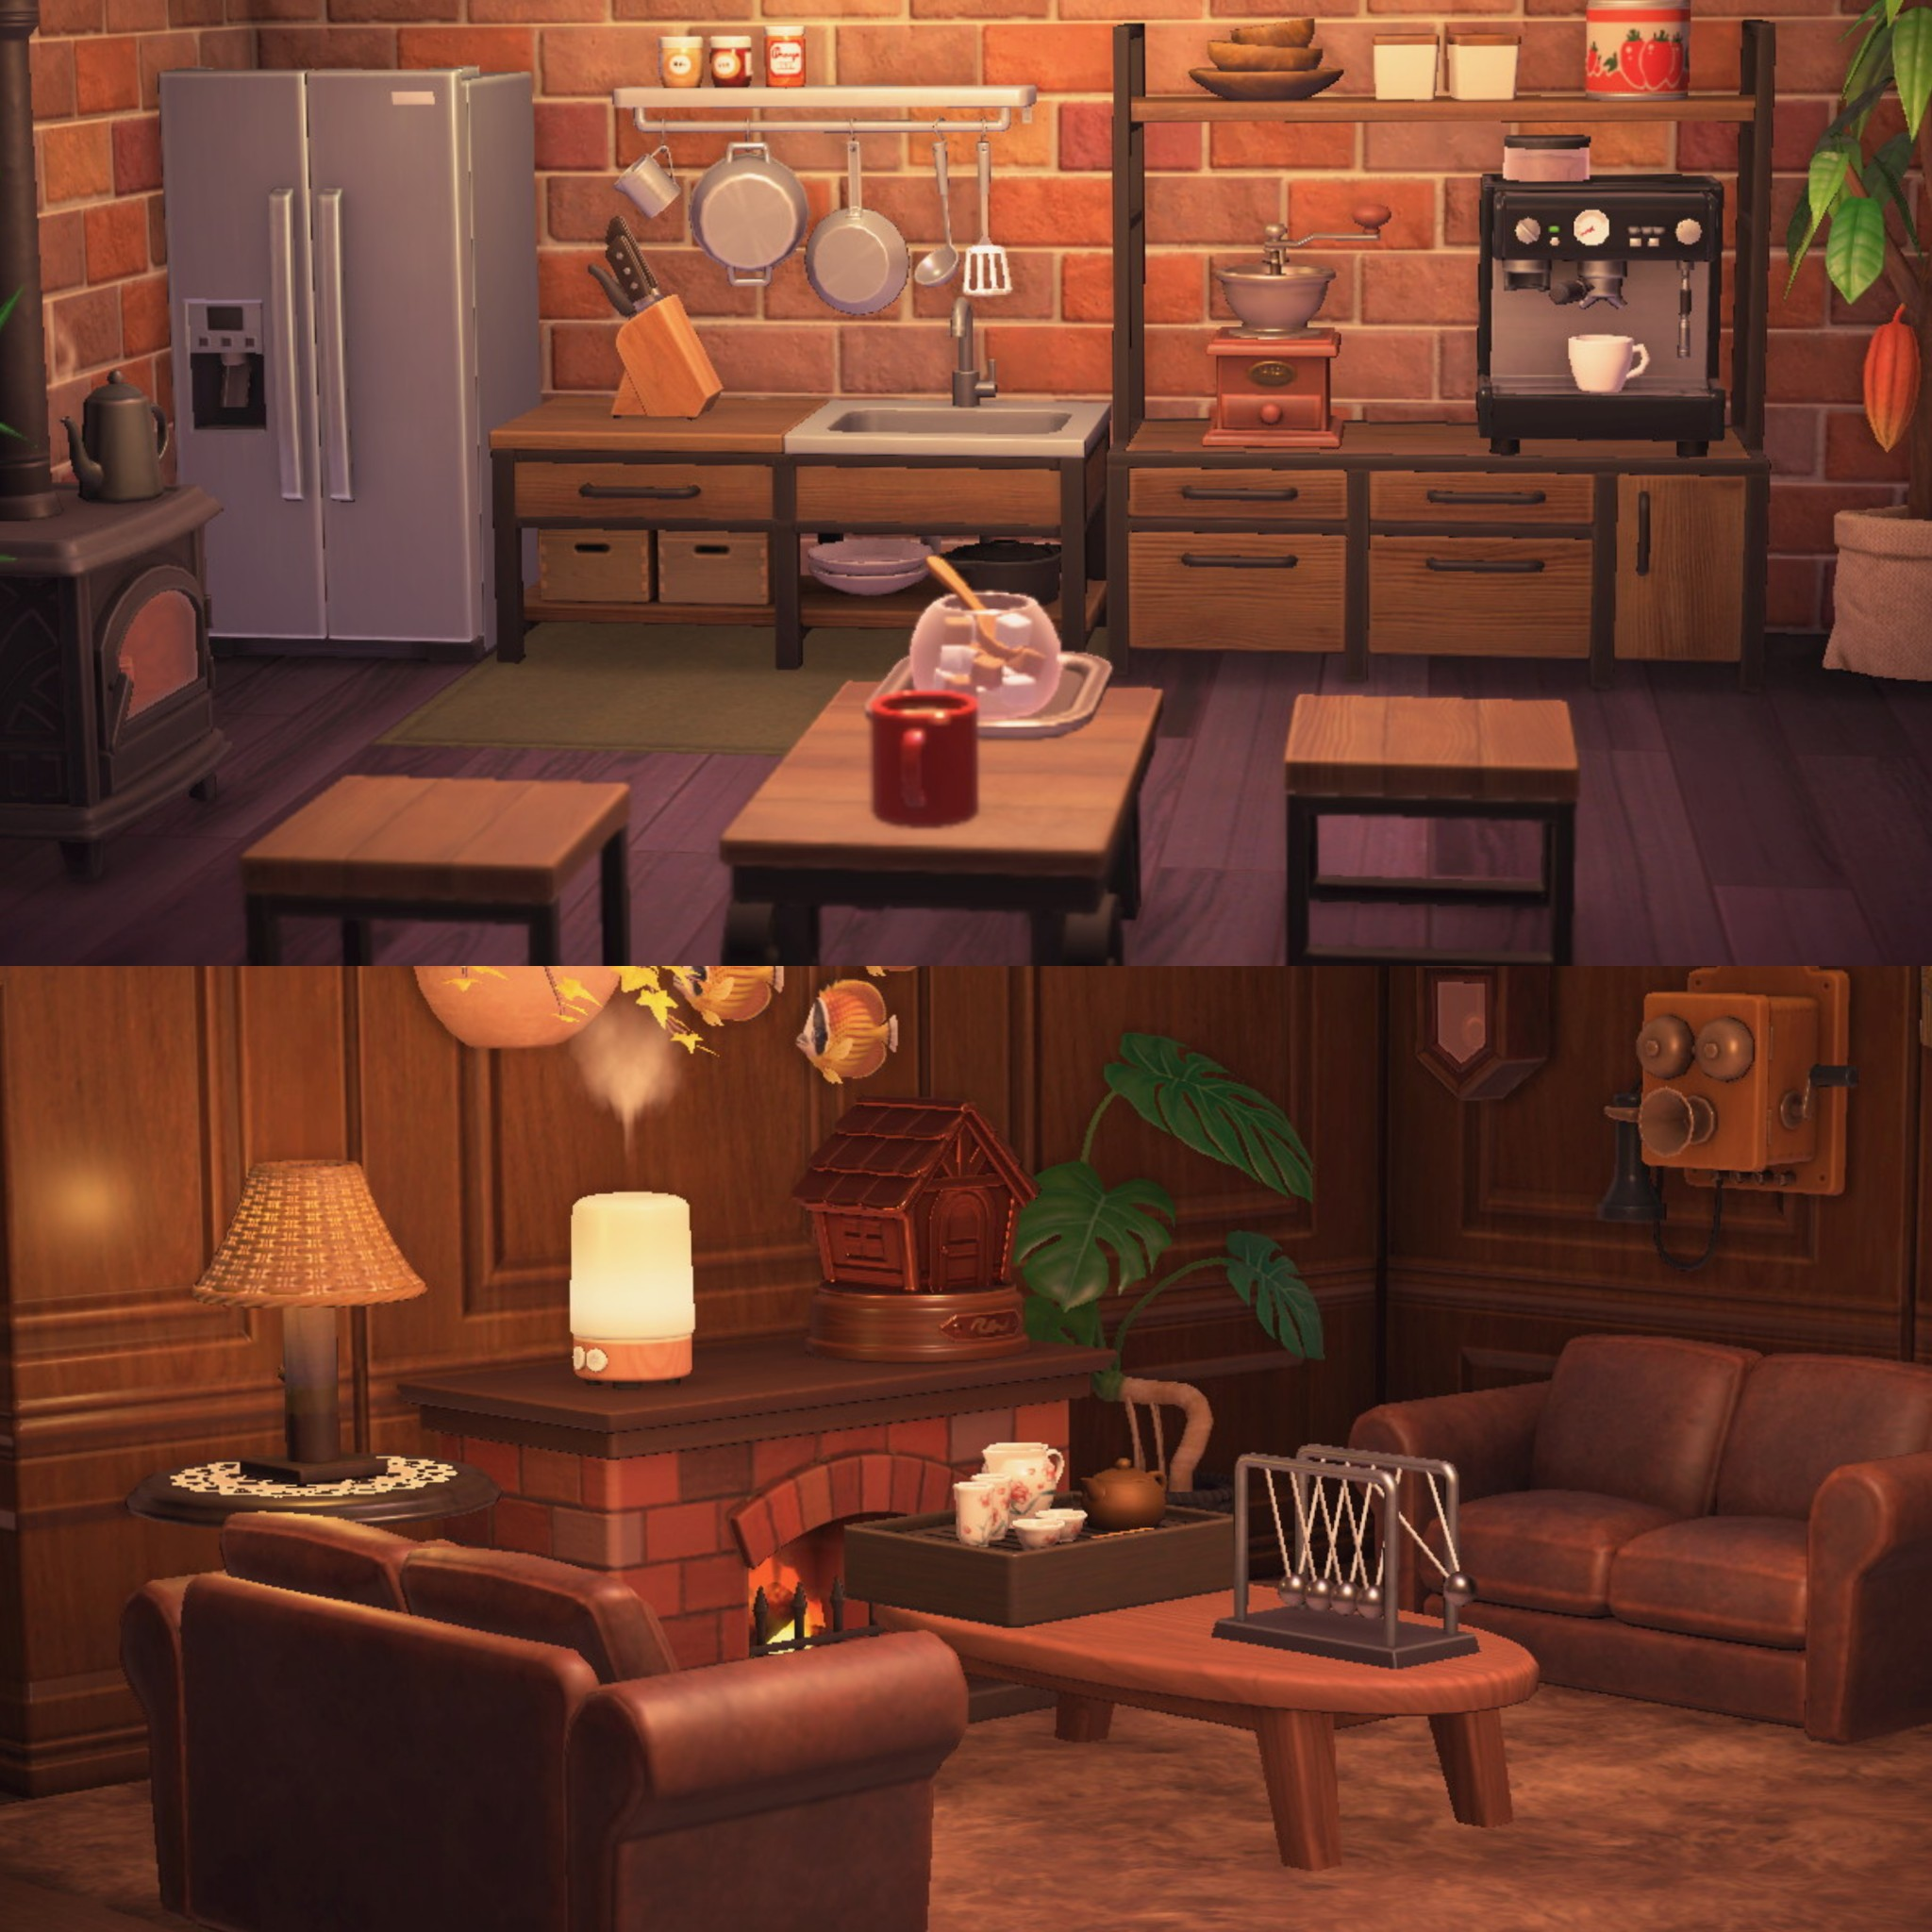 Quite Happy With How My Kitchen And Living Room Is Now Animalcrossing